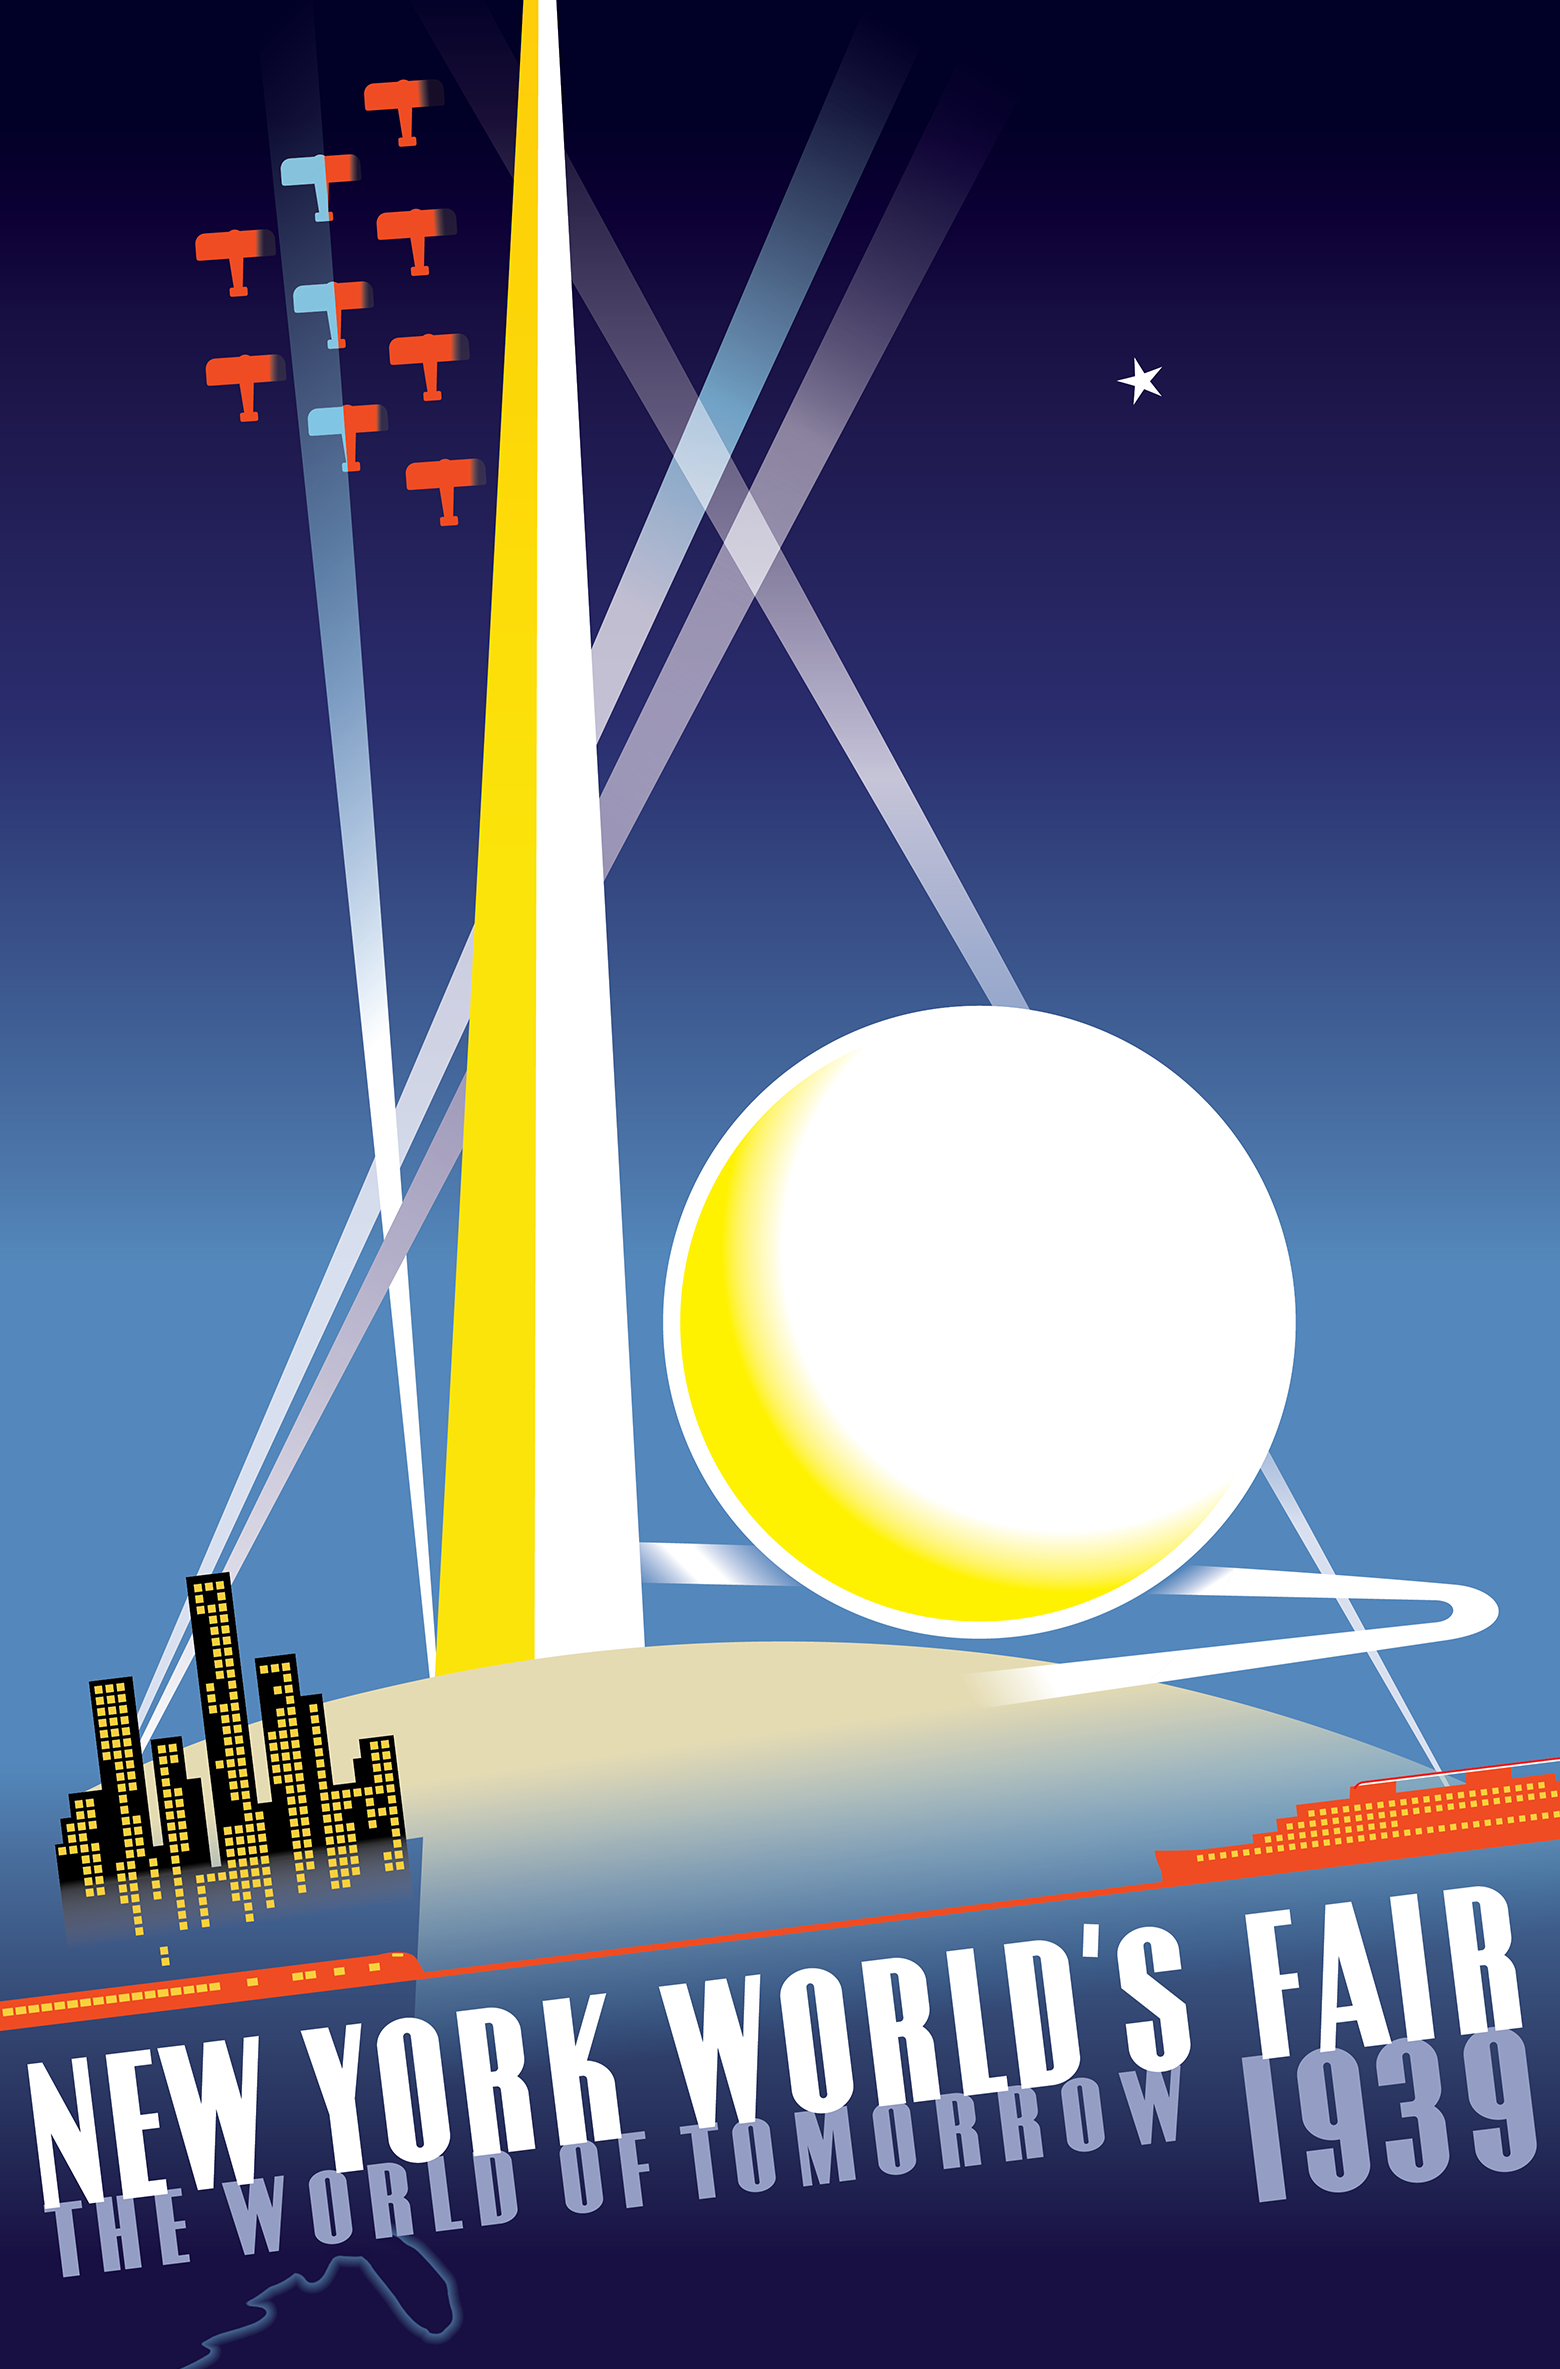 the world of tomorrow Directed by lance bird, tom johnson with jason robards, adora andrews, king george vi, fiorello laguardia documentary featuring original materials from the 1939 new york world's fair.